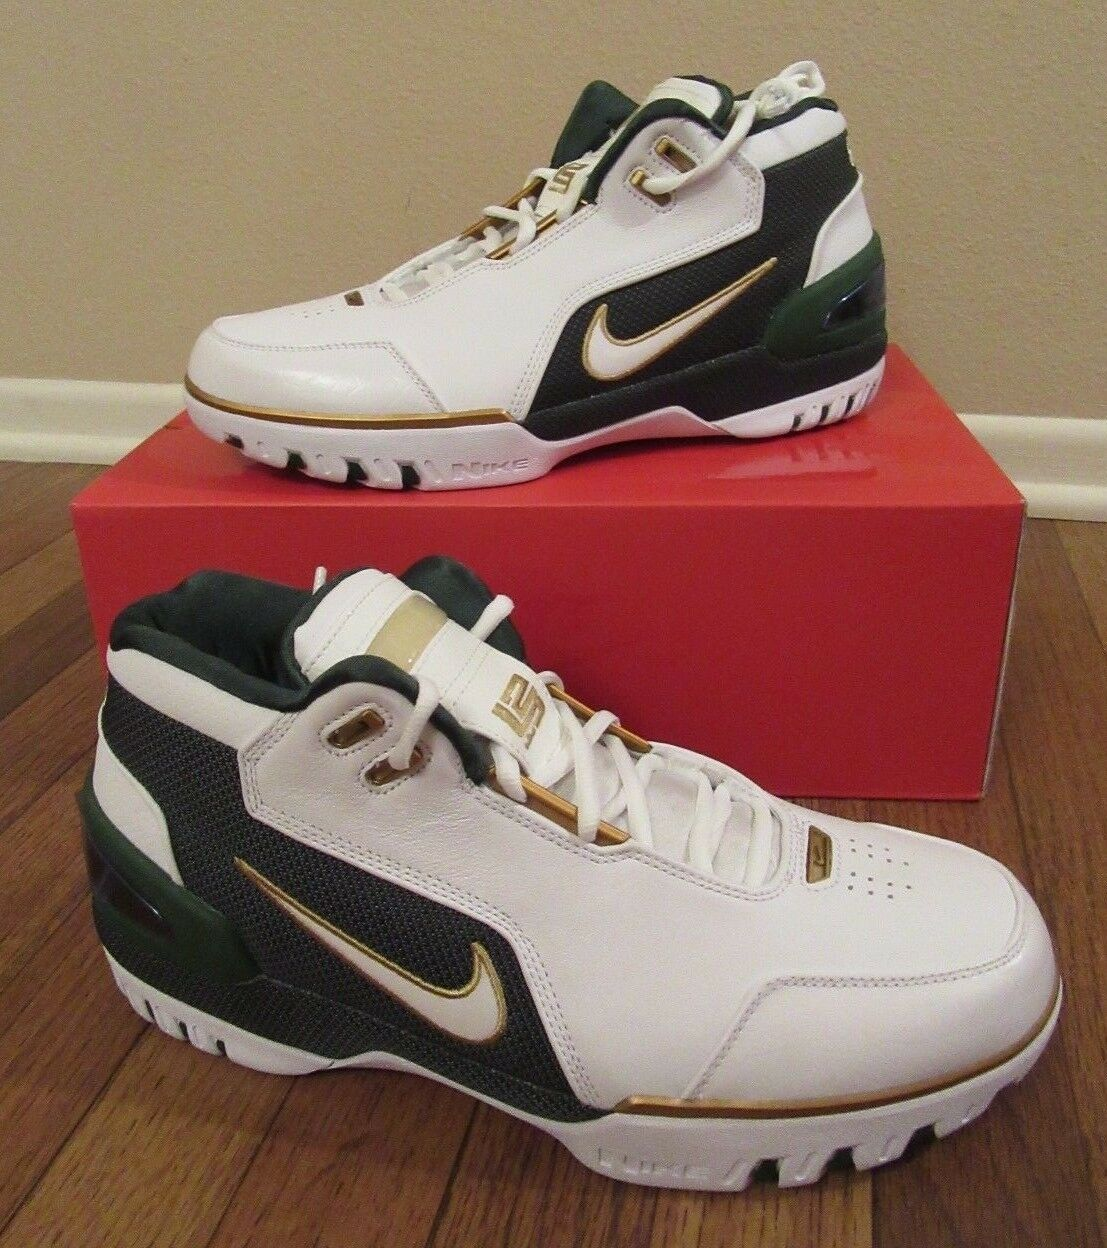 Nike Air Zoom Generation SVSM QS Size 11 White Metallic Gold Dust AO2367 100 NIB